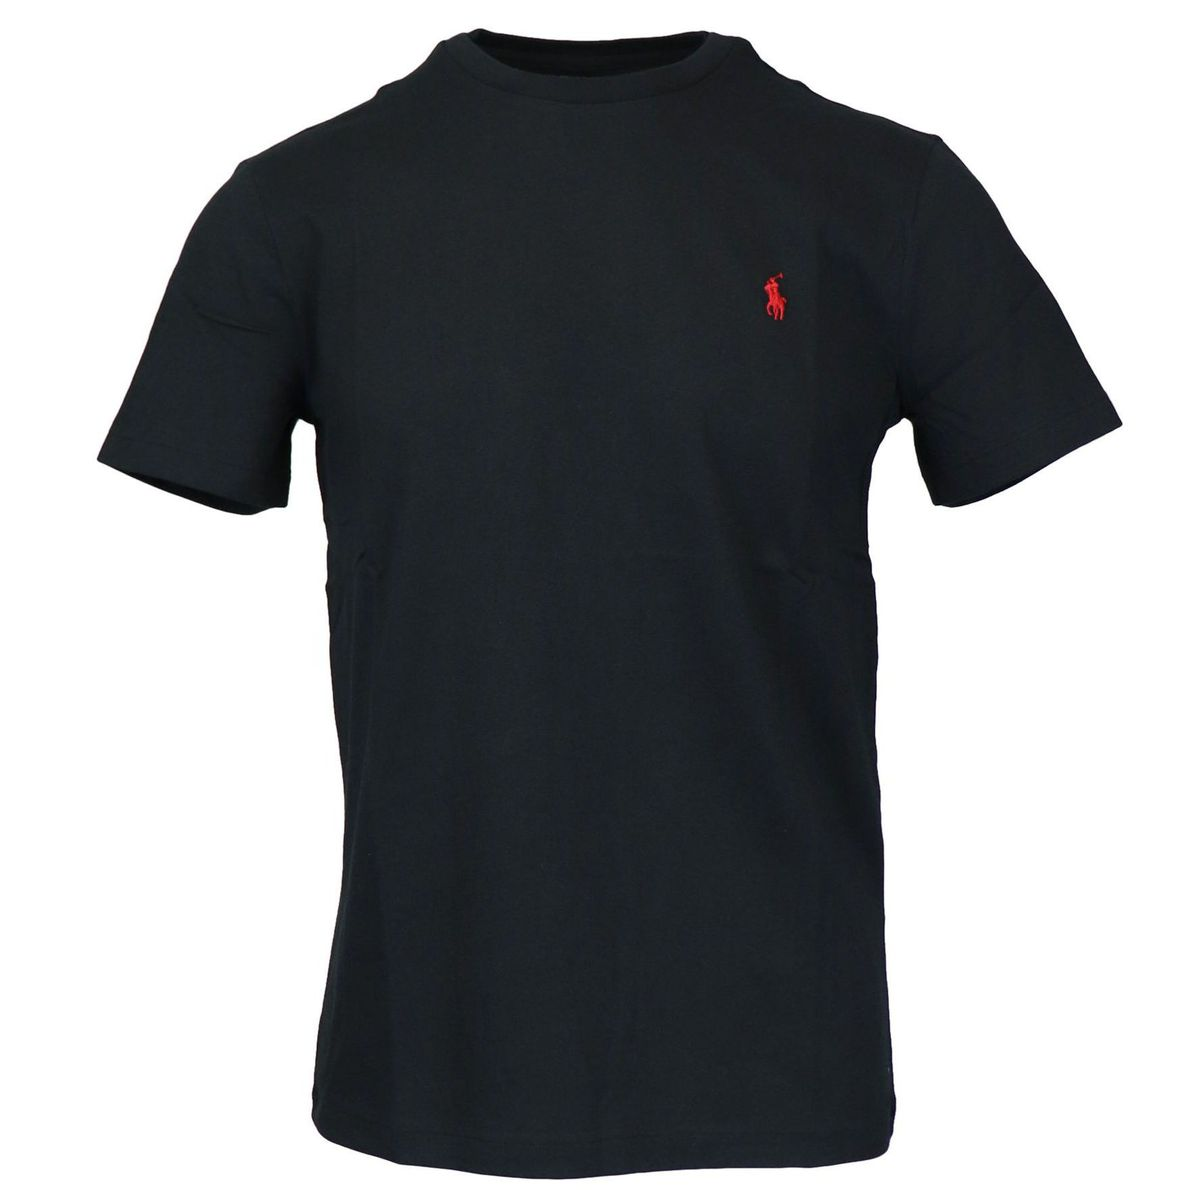 Cotton T-shirt with contrasting logo embroidery Black Polo Ralph Lauren